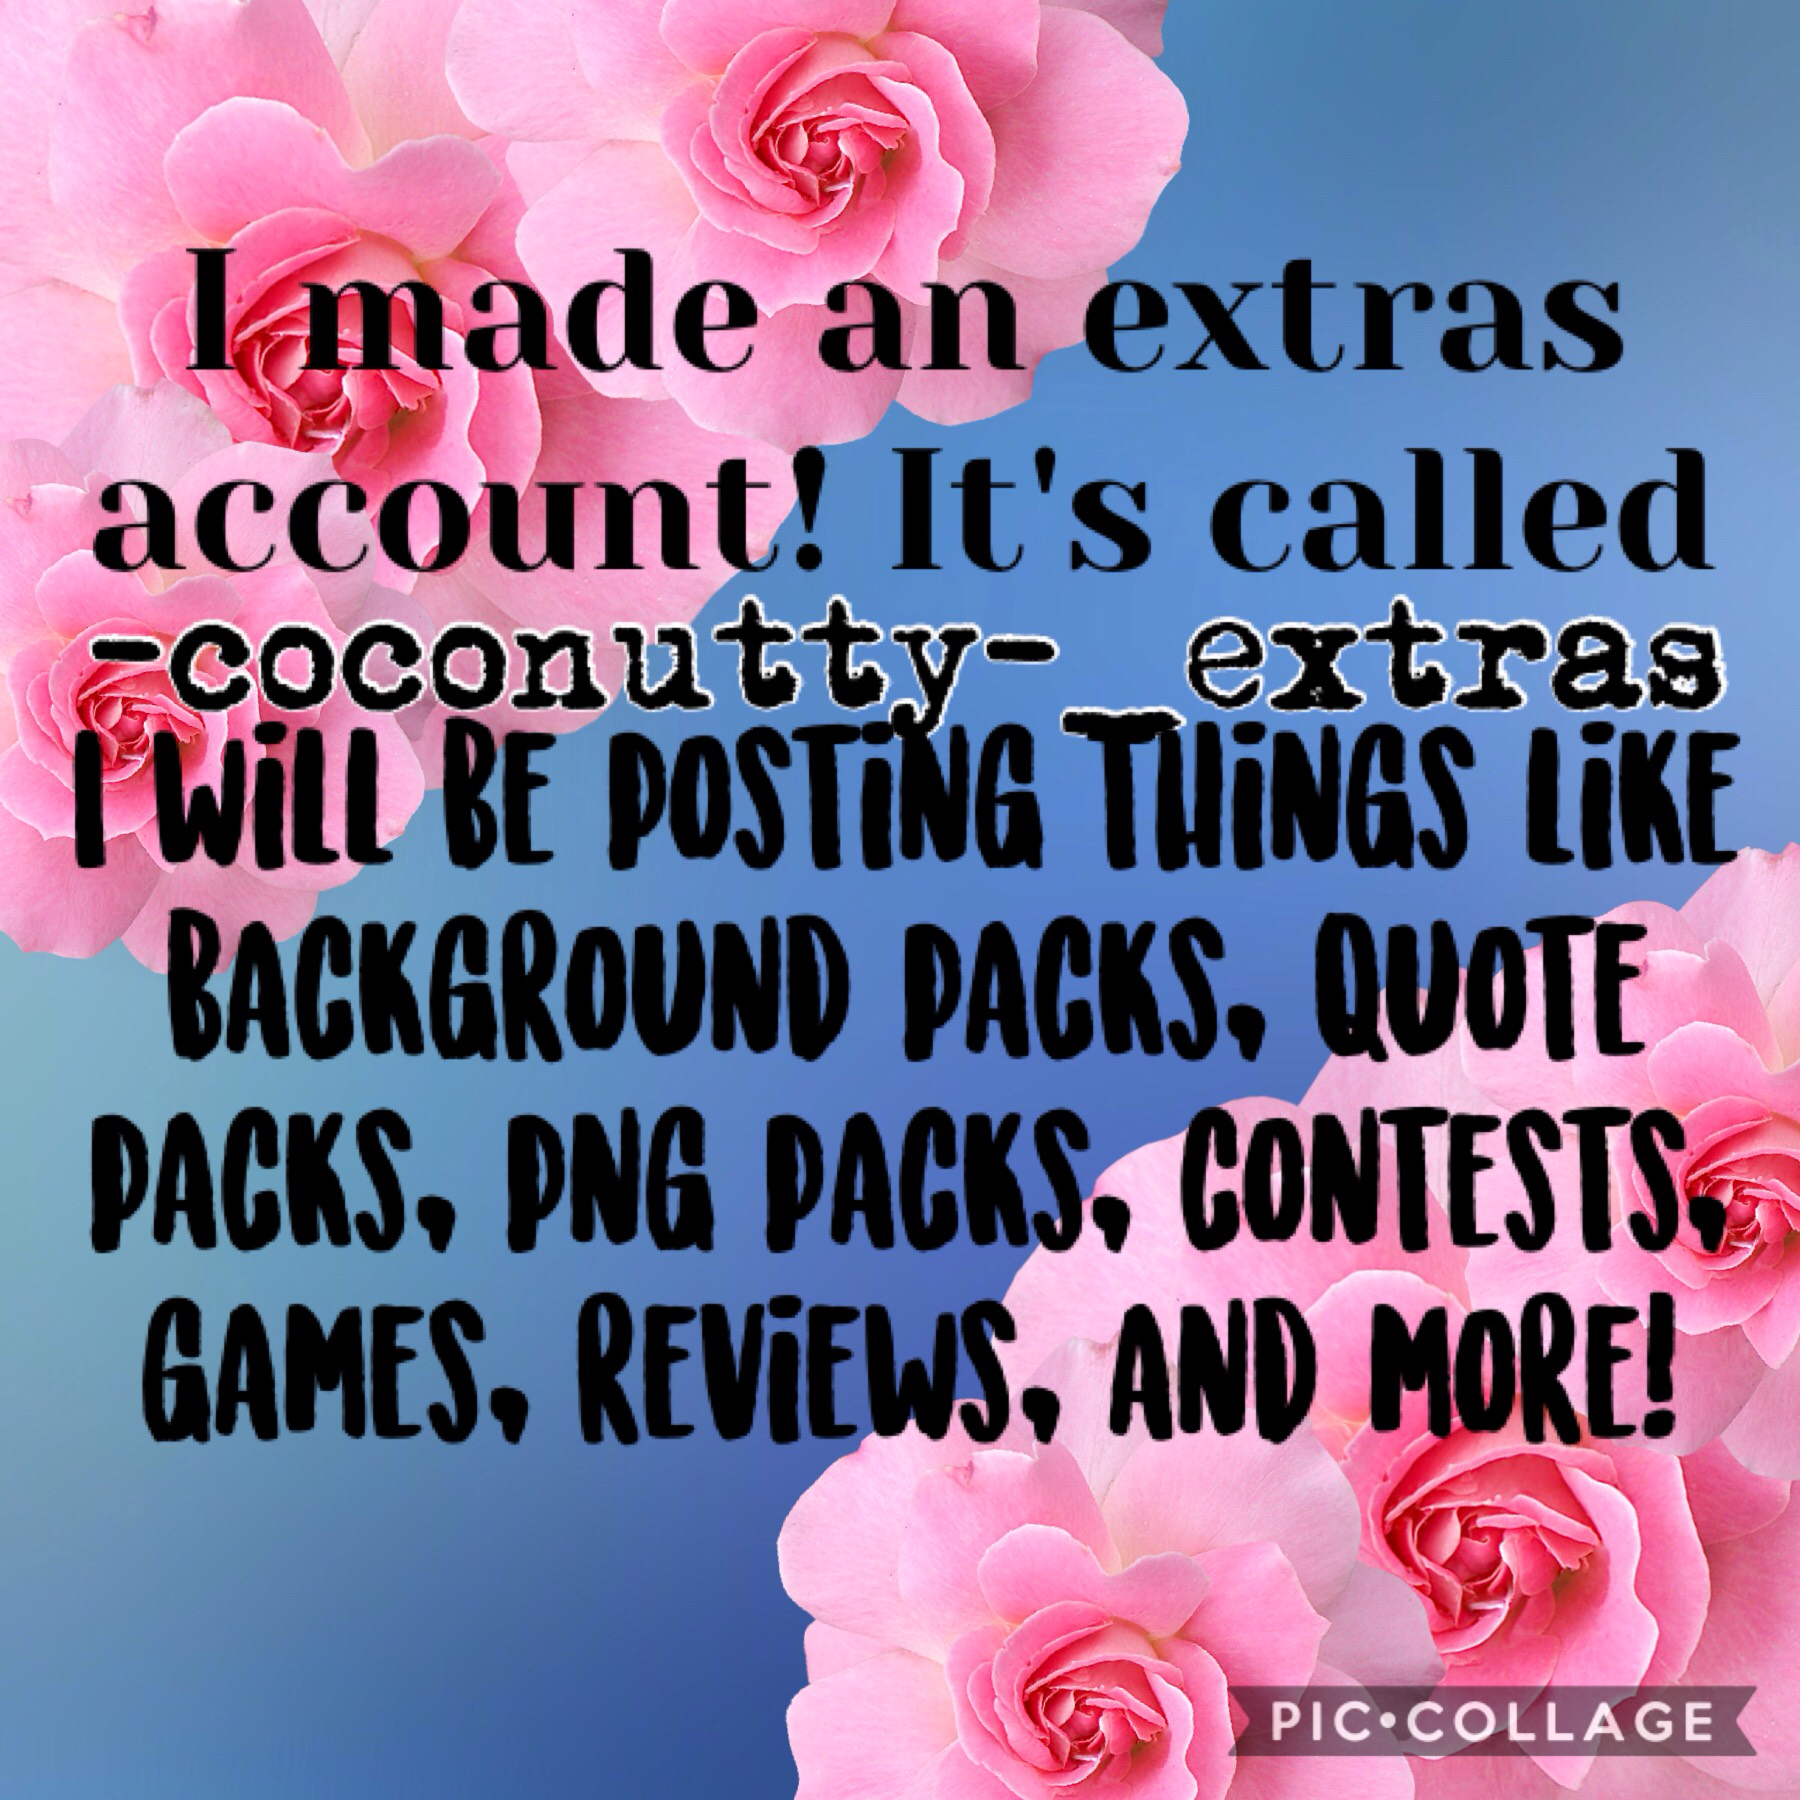 I made an extras account! I'll be posting background/quote/png packs, contests, games, reviews, and more. YAY!